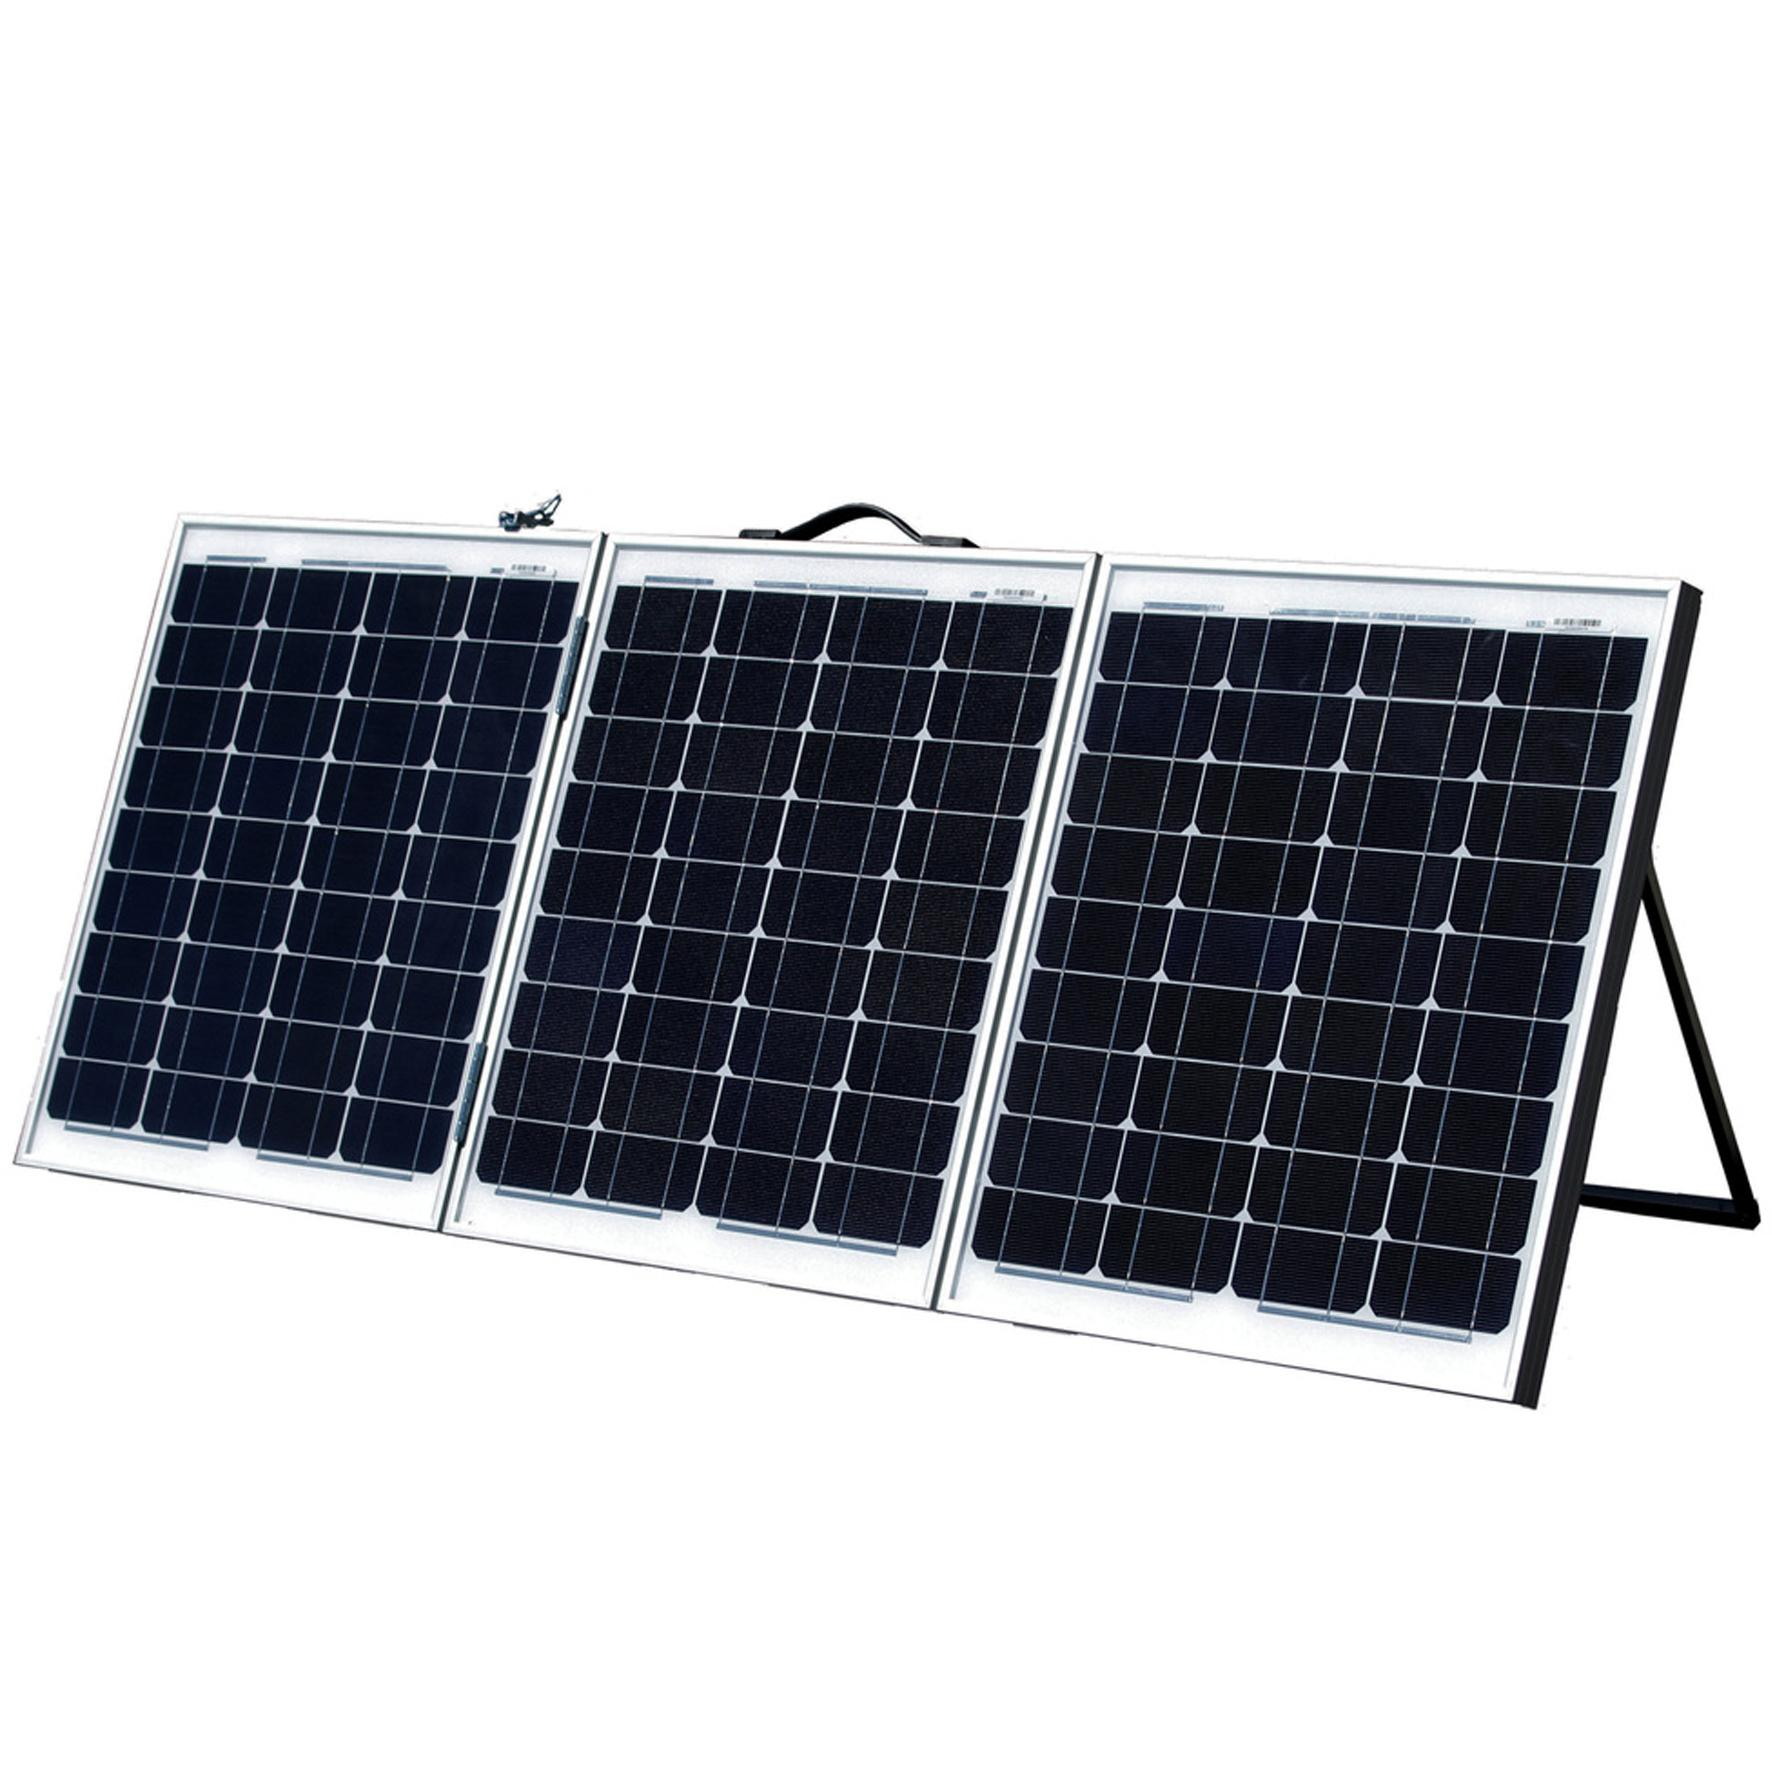 Pipms X additionally Organic Transit Trickit in addition Index moreover Srne Mppt Ml Image Front moreover Installing Solar Panels On A Boa. on solar panel charge controller